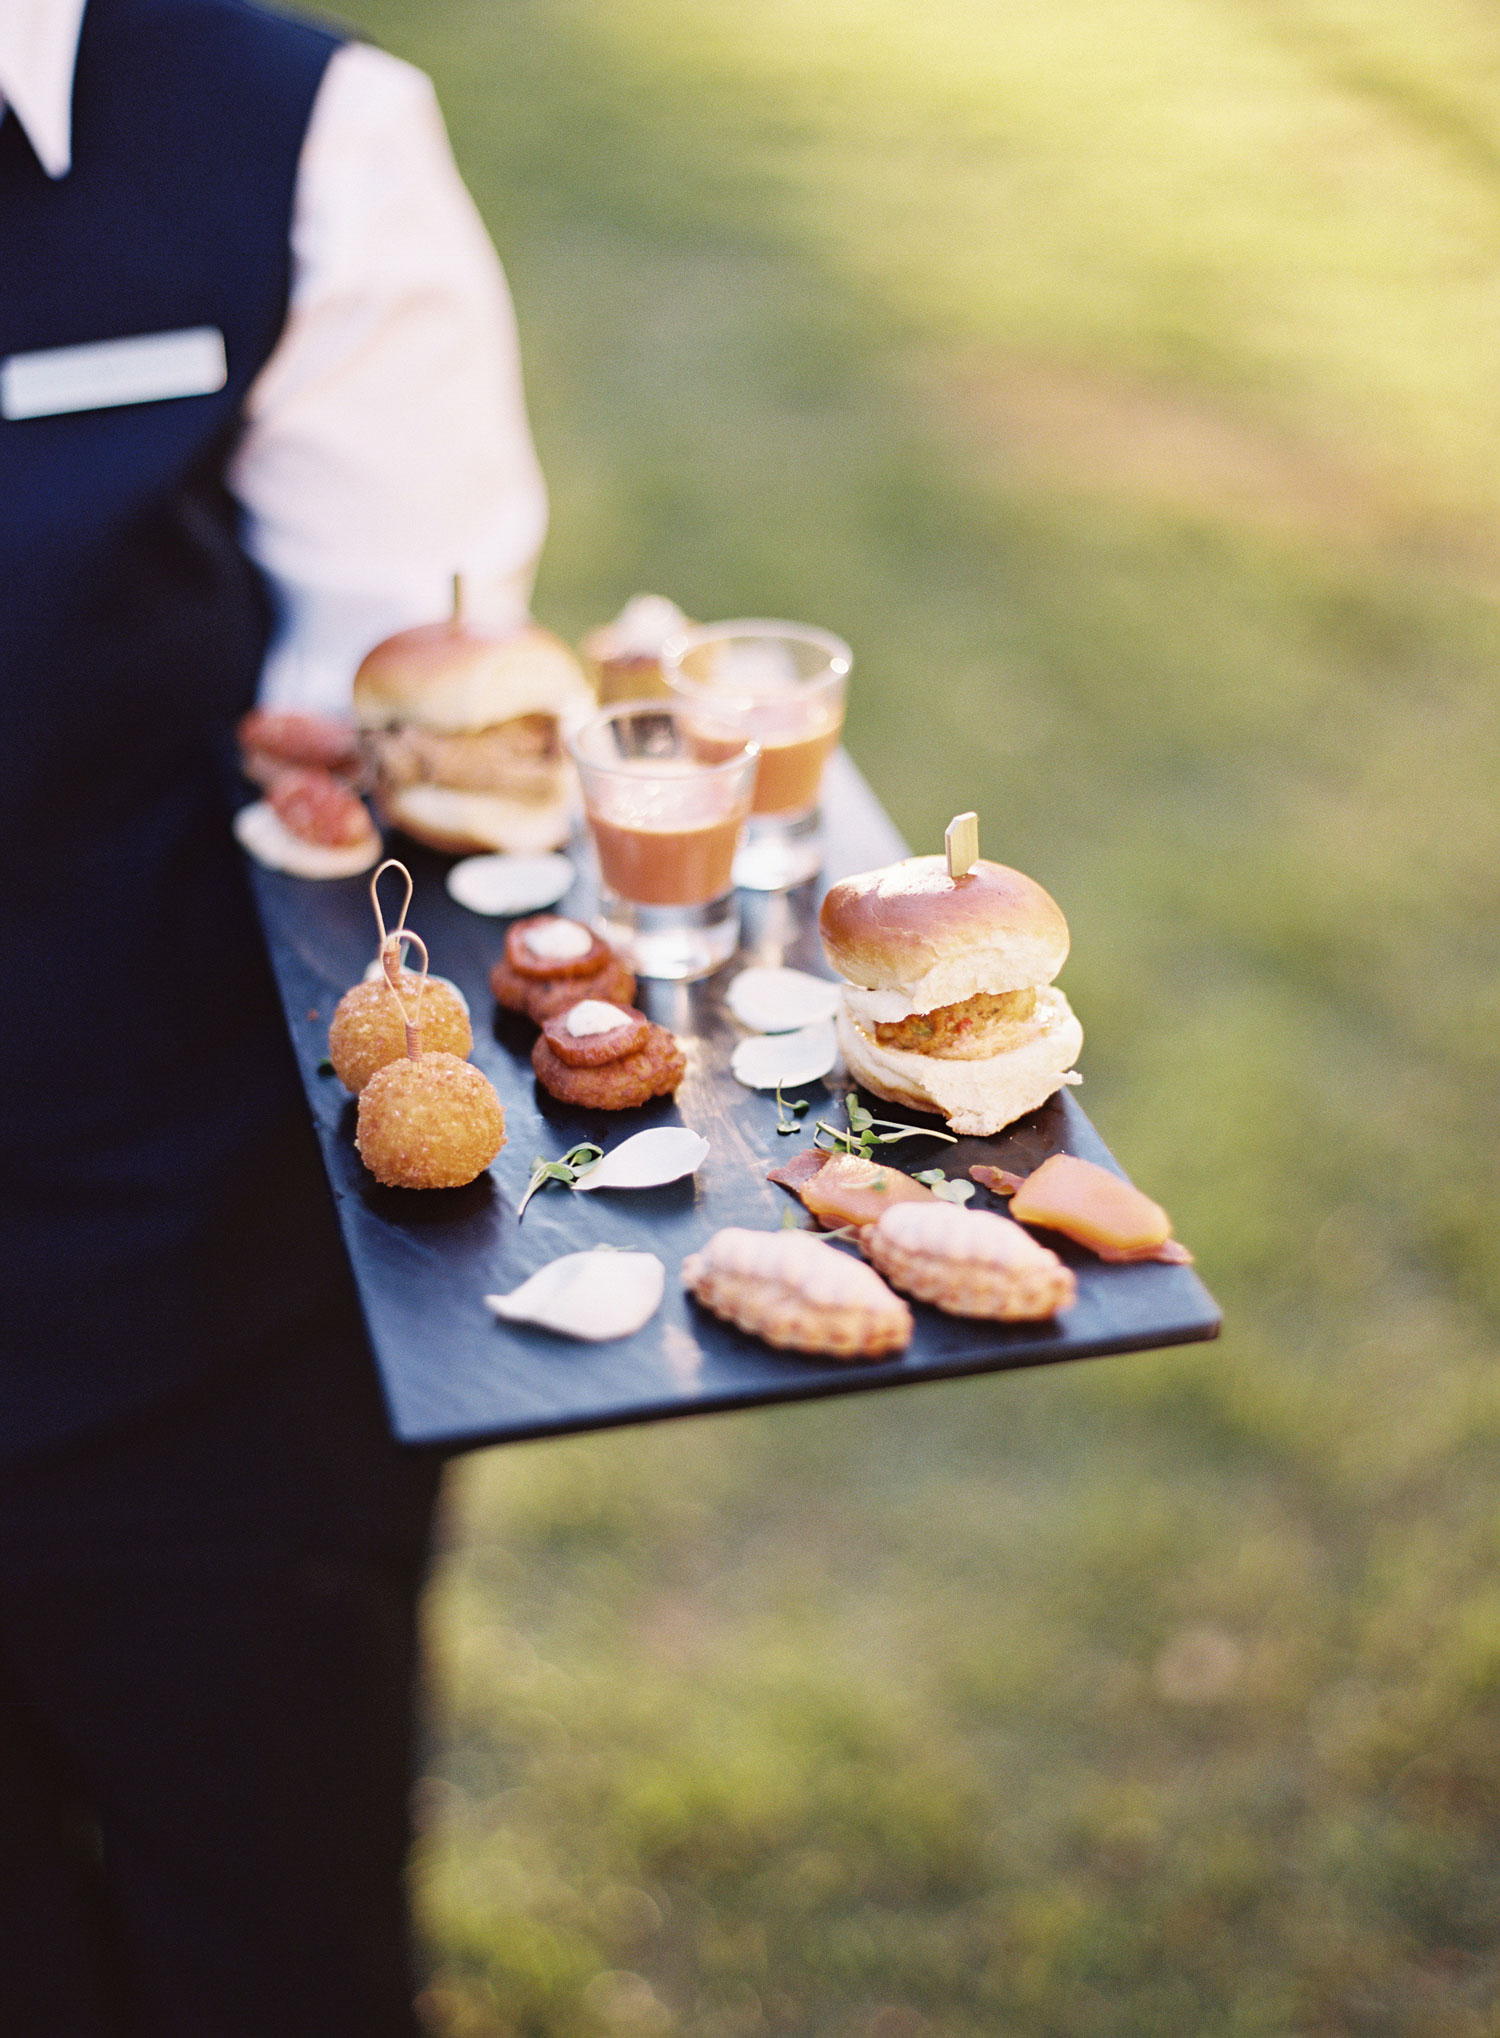 Personalize wedding favorite foods on tray cocktail hour appetizers